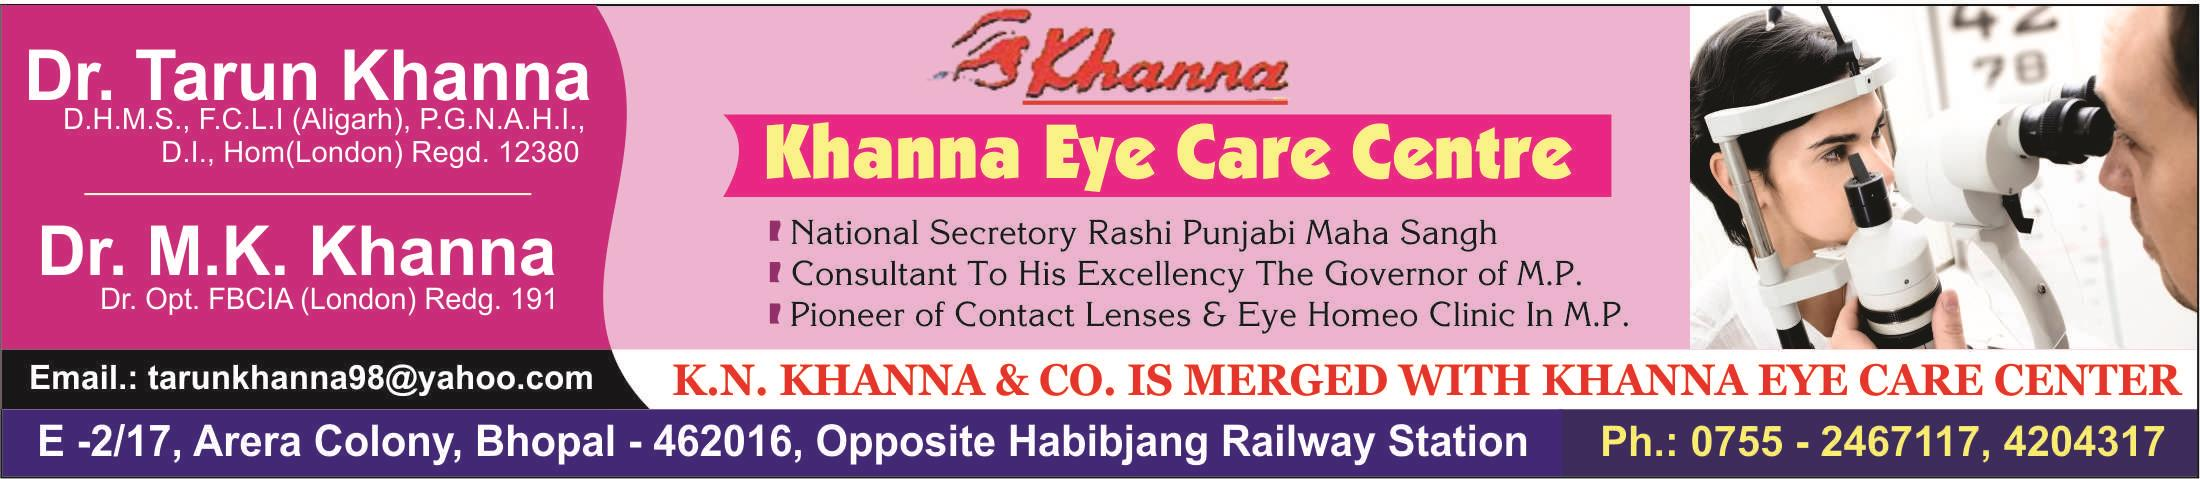 We at khanna Eye clinic typically do the following: Perform vision tests and analyze results Diagnose sight problems, such as nearsightedness or farsightedness and eye diseases, such as glaucoma Prescribe eyeglasses, contact lenses, and med - by Khanna Eye care center, Bhopal